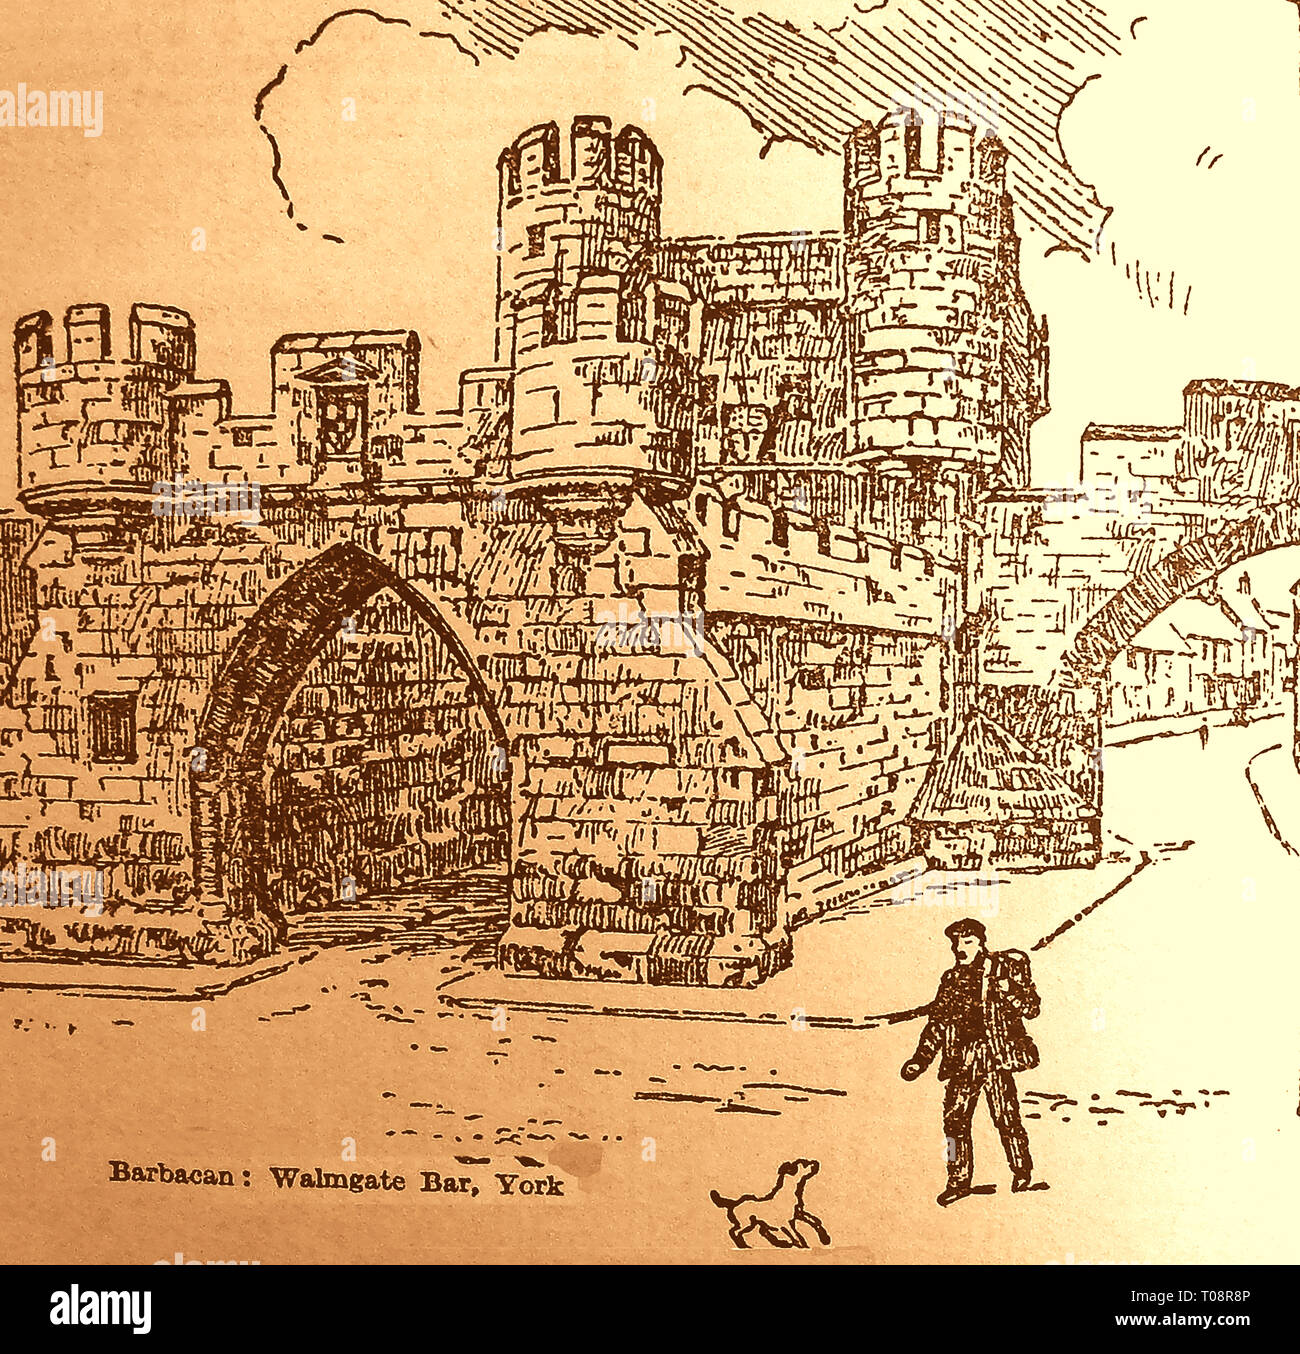 An old illustration showing the Barbican at Walmgate Bar in the city of York, England - Stock Image